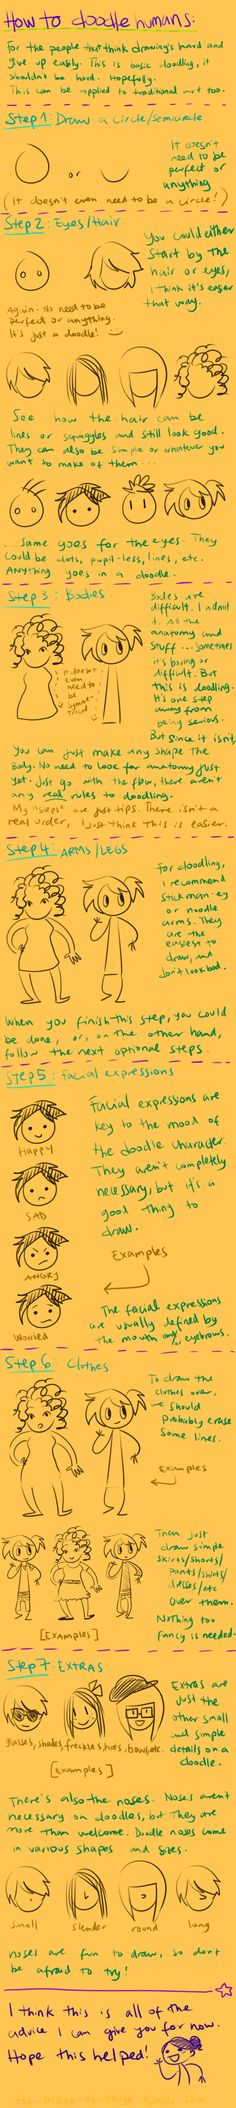 doodling tutorial by